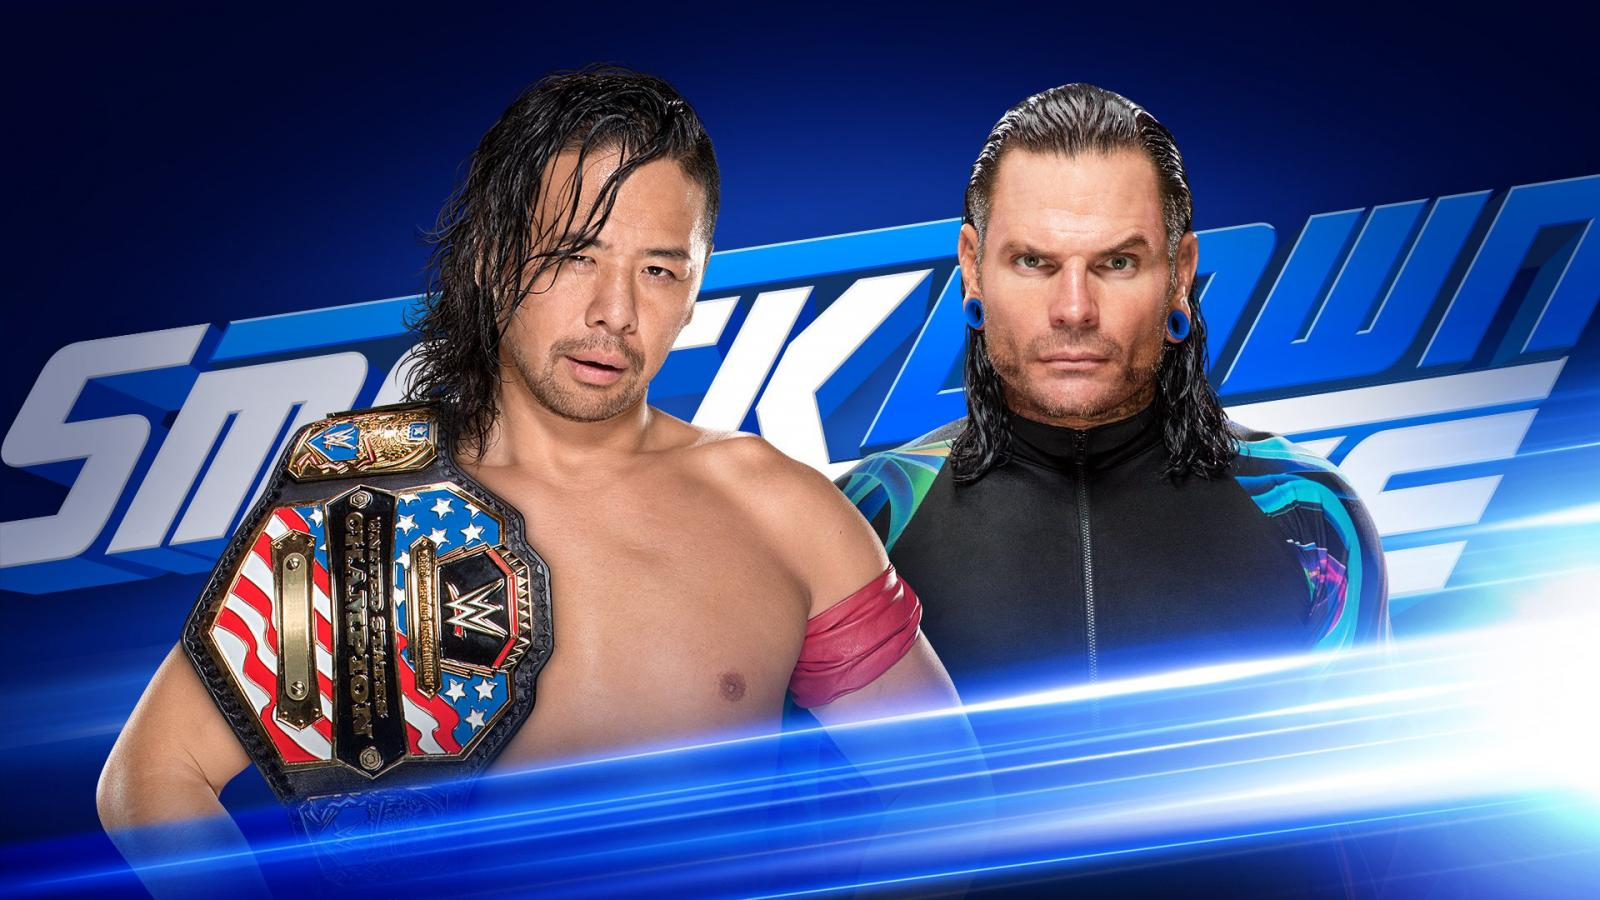 Will Hardy reclaim his title on SmackDown tonight?